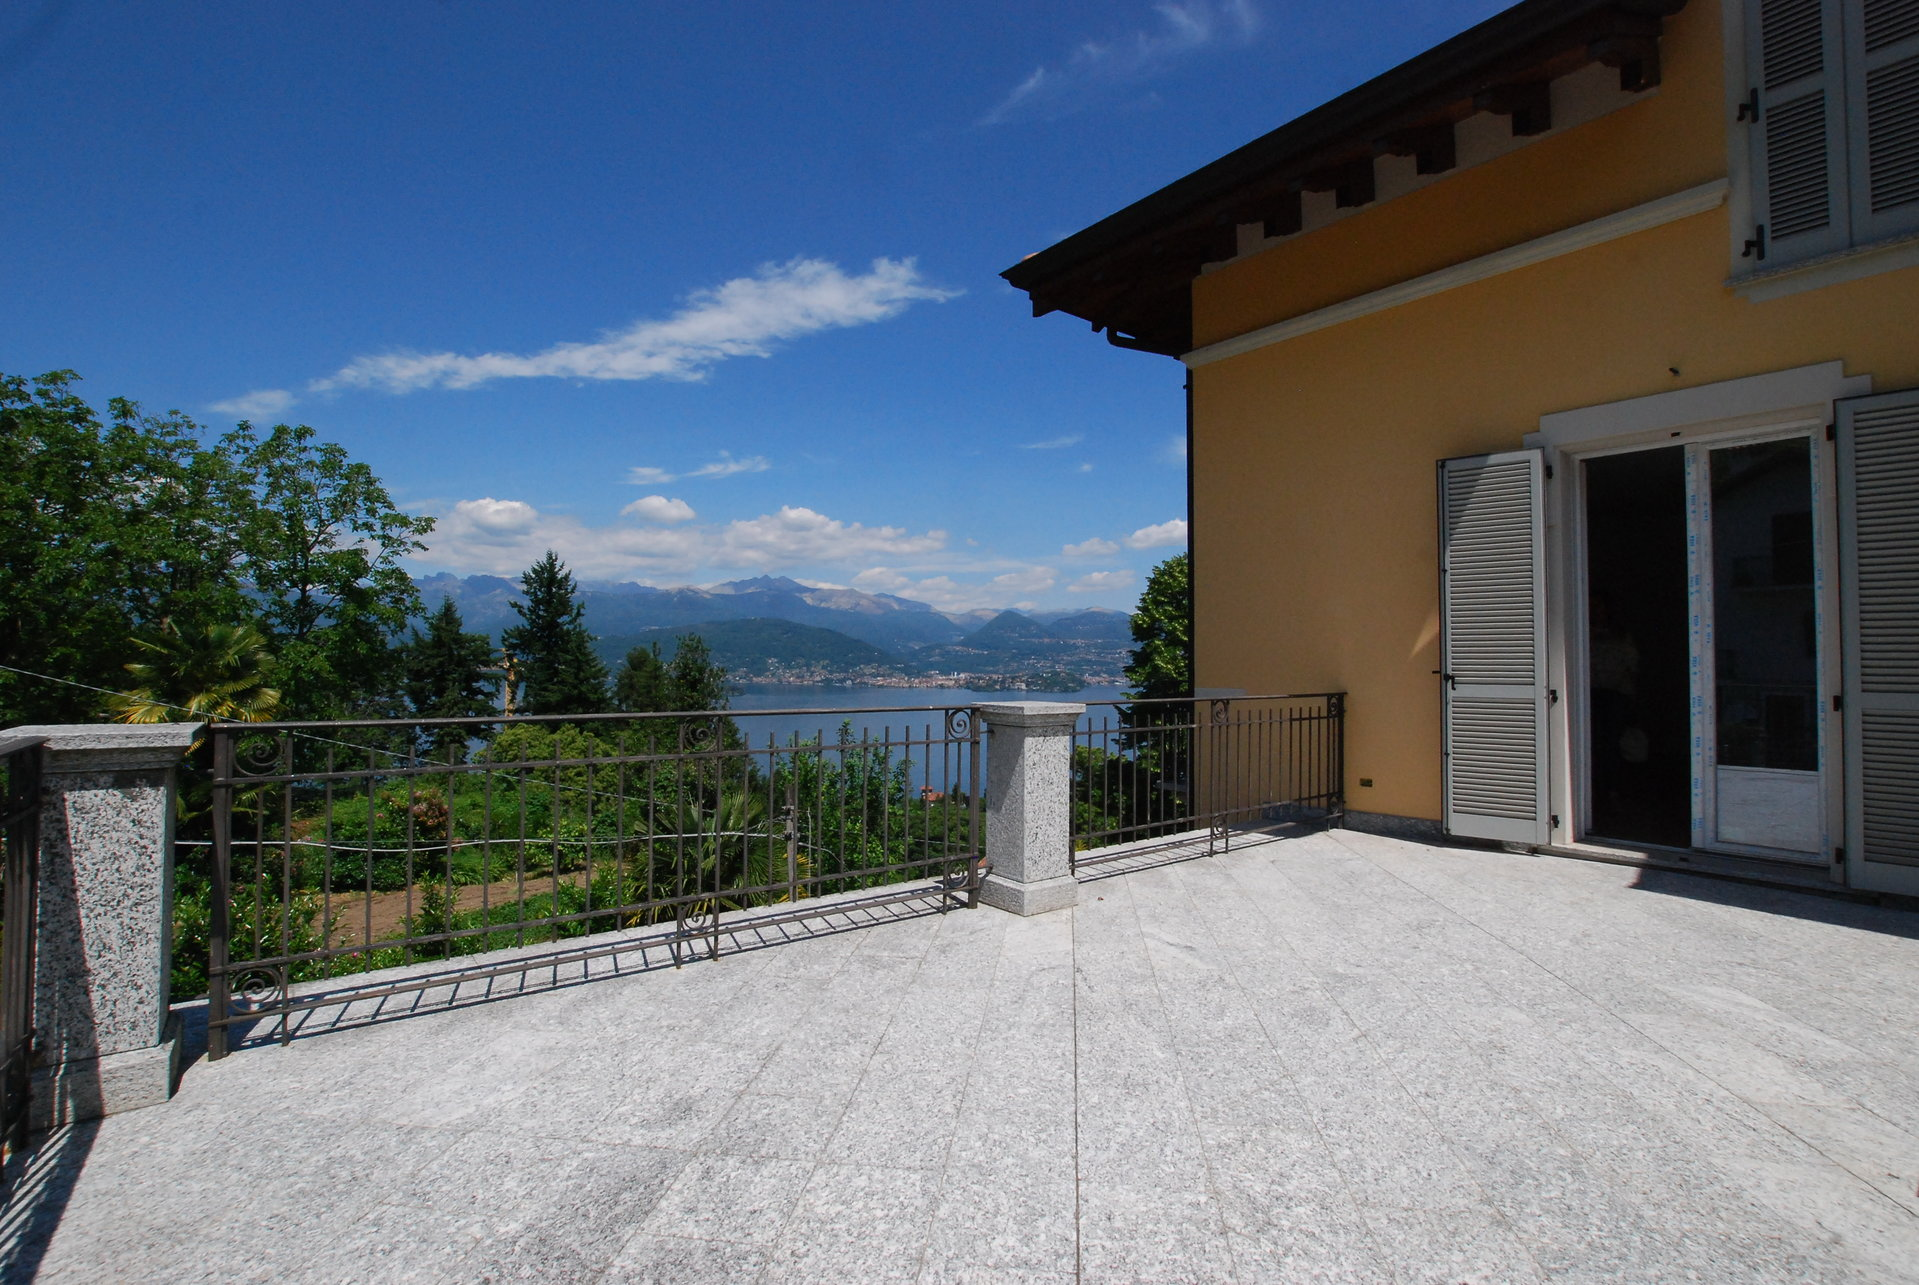 Furnished apartment for sale in Stresa - lake view